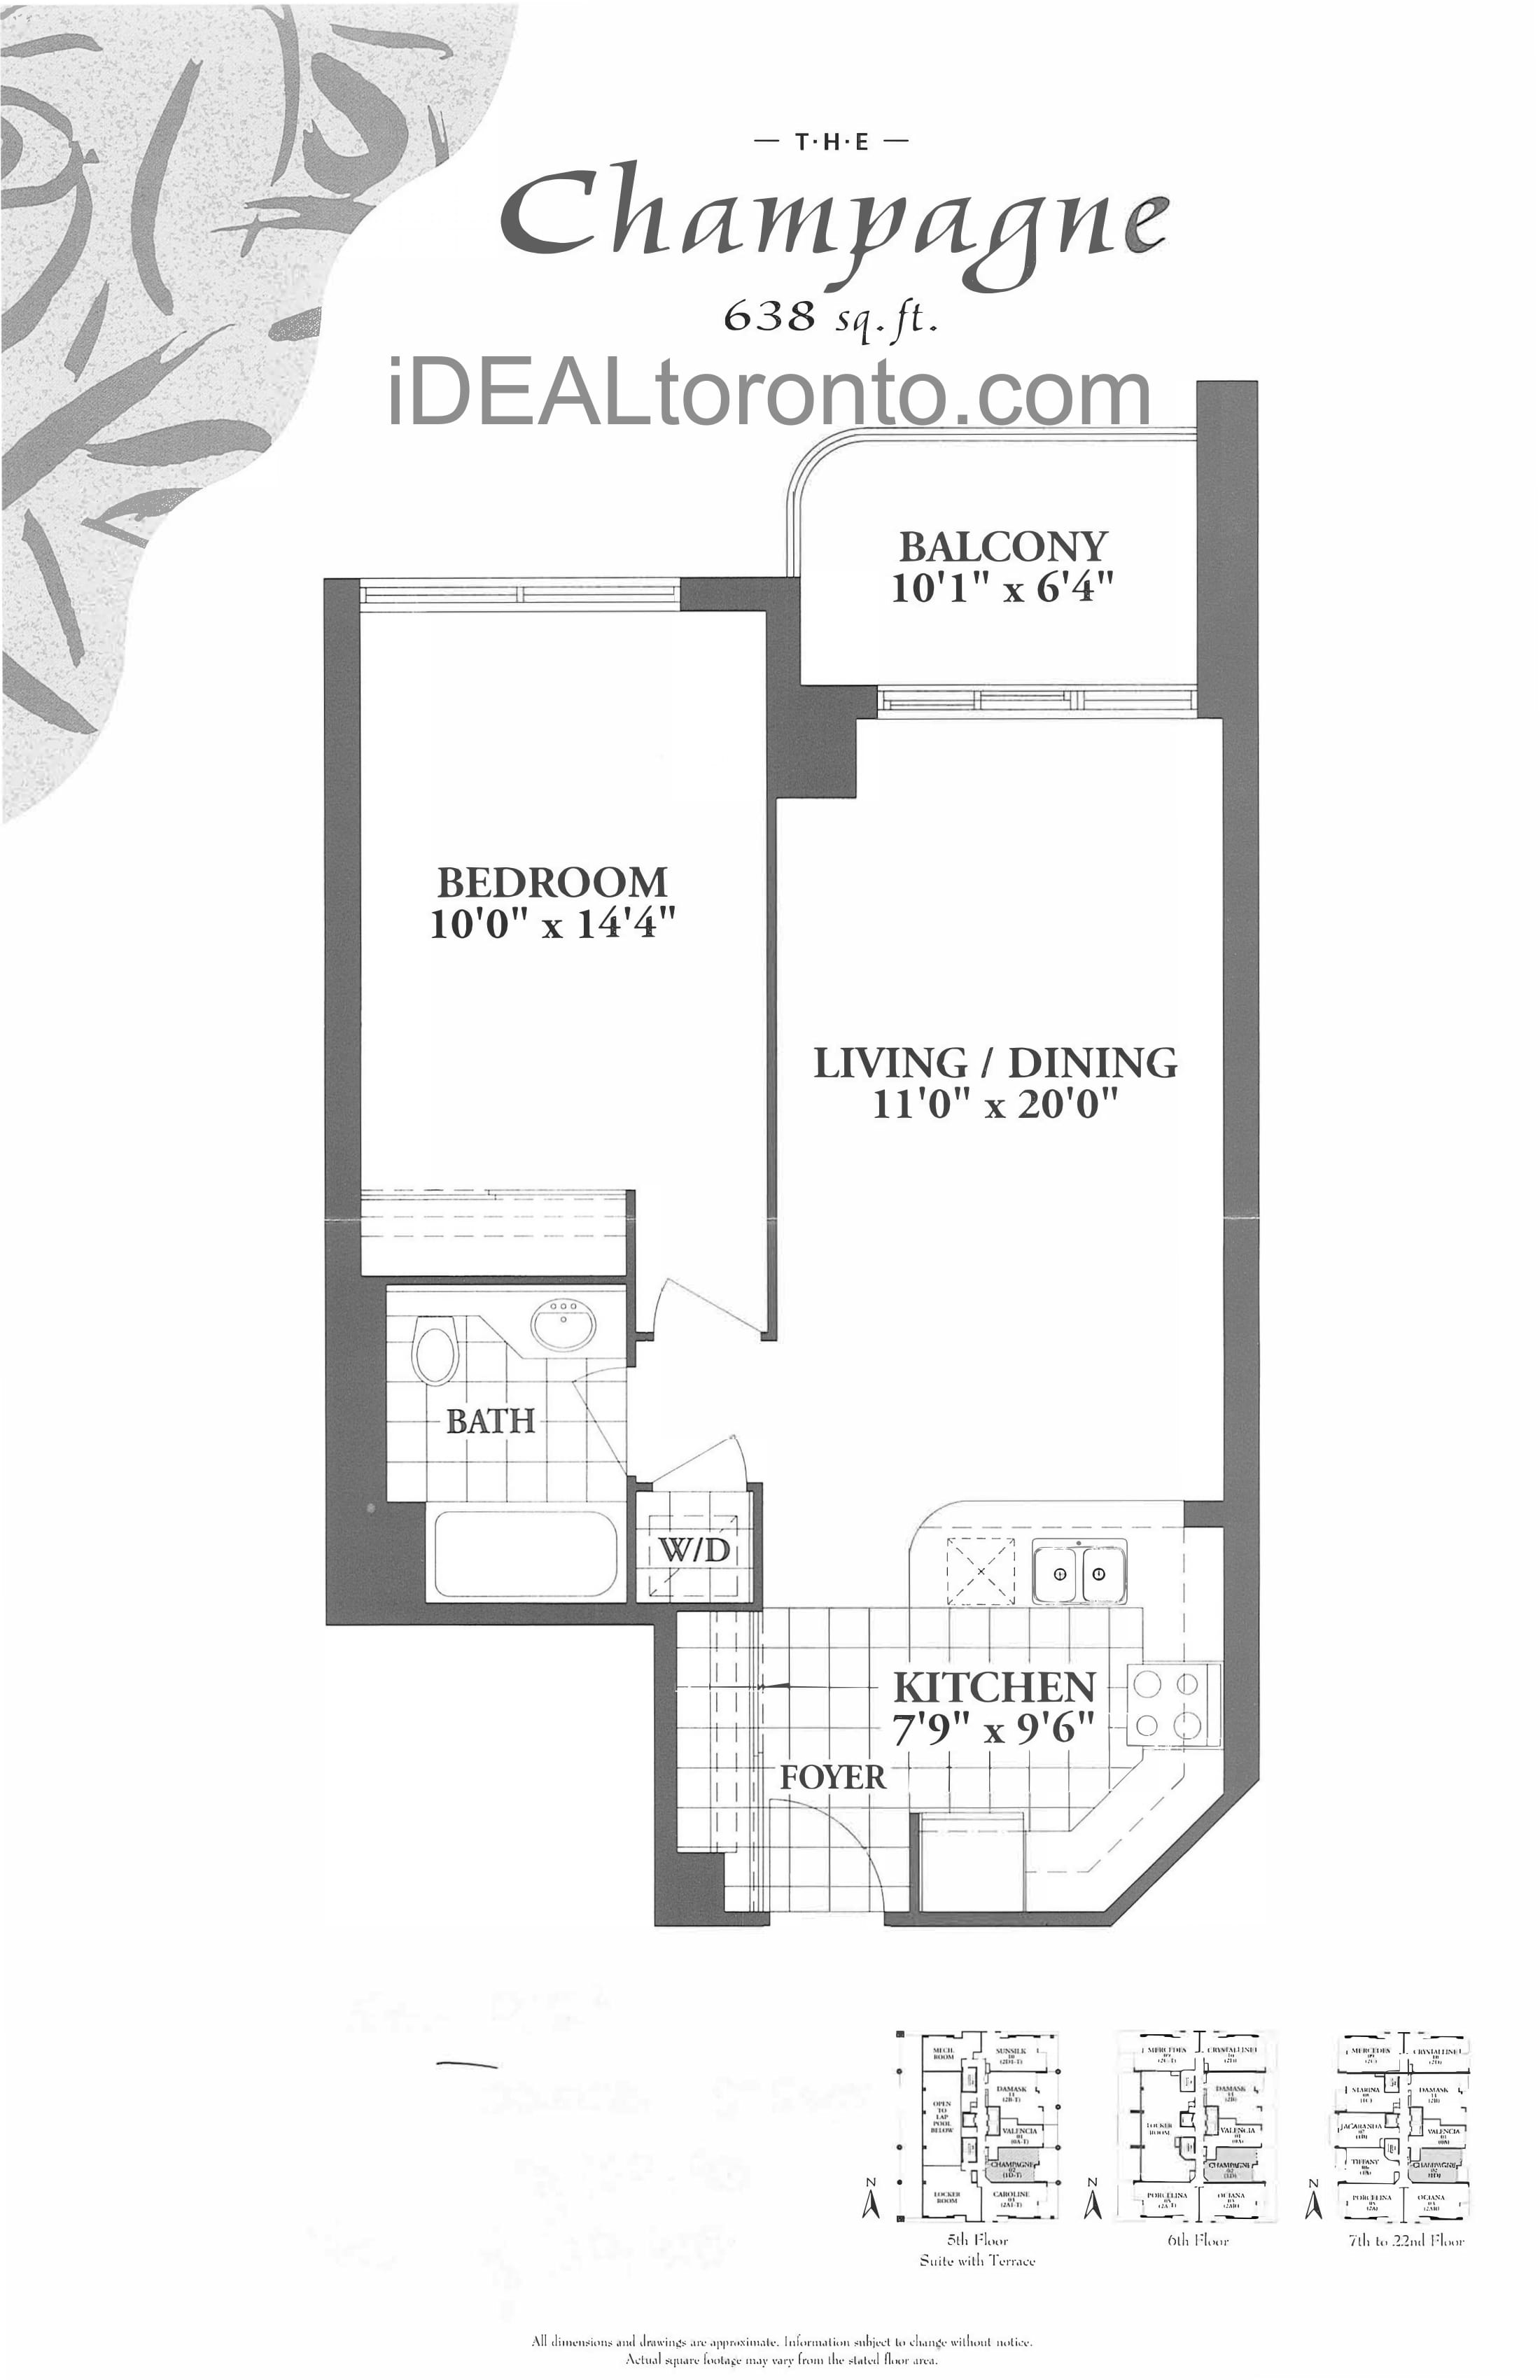 The Champagne: 1 Bedroom, 638 SqFt